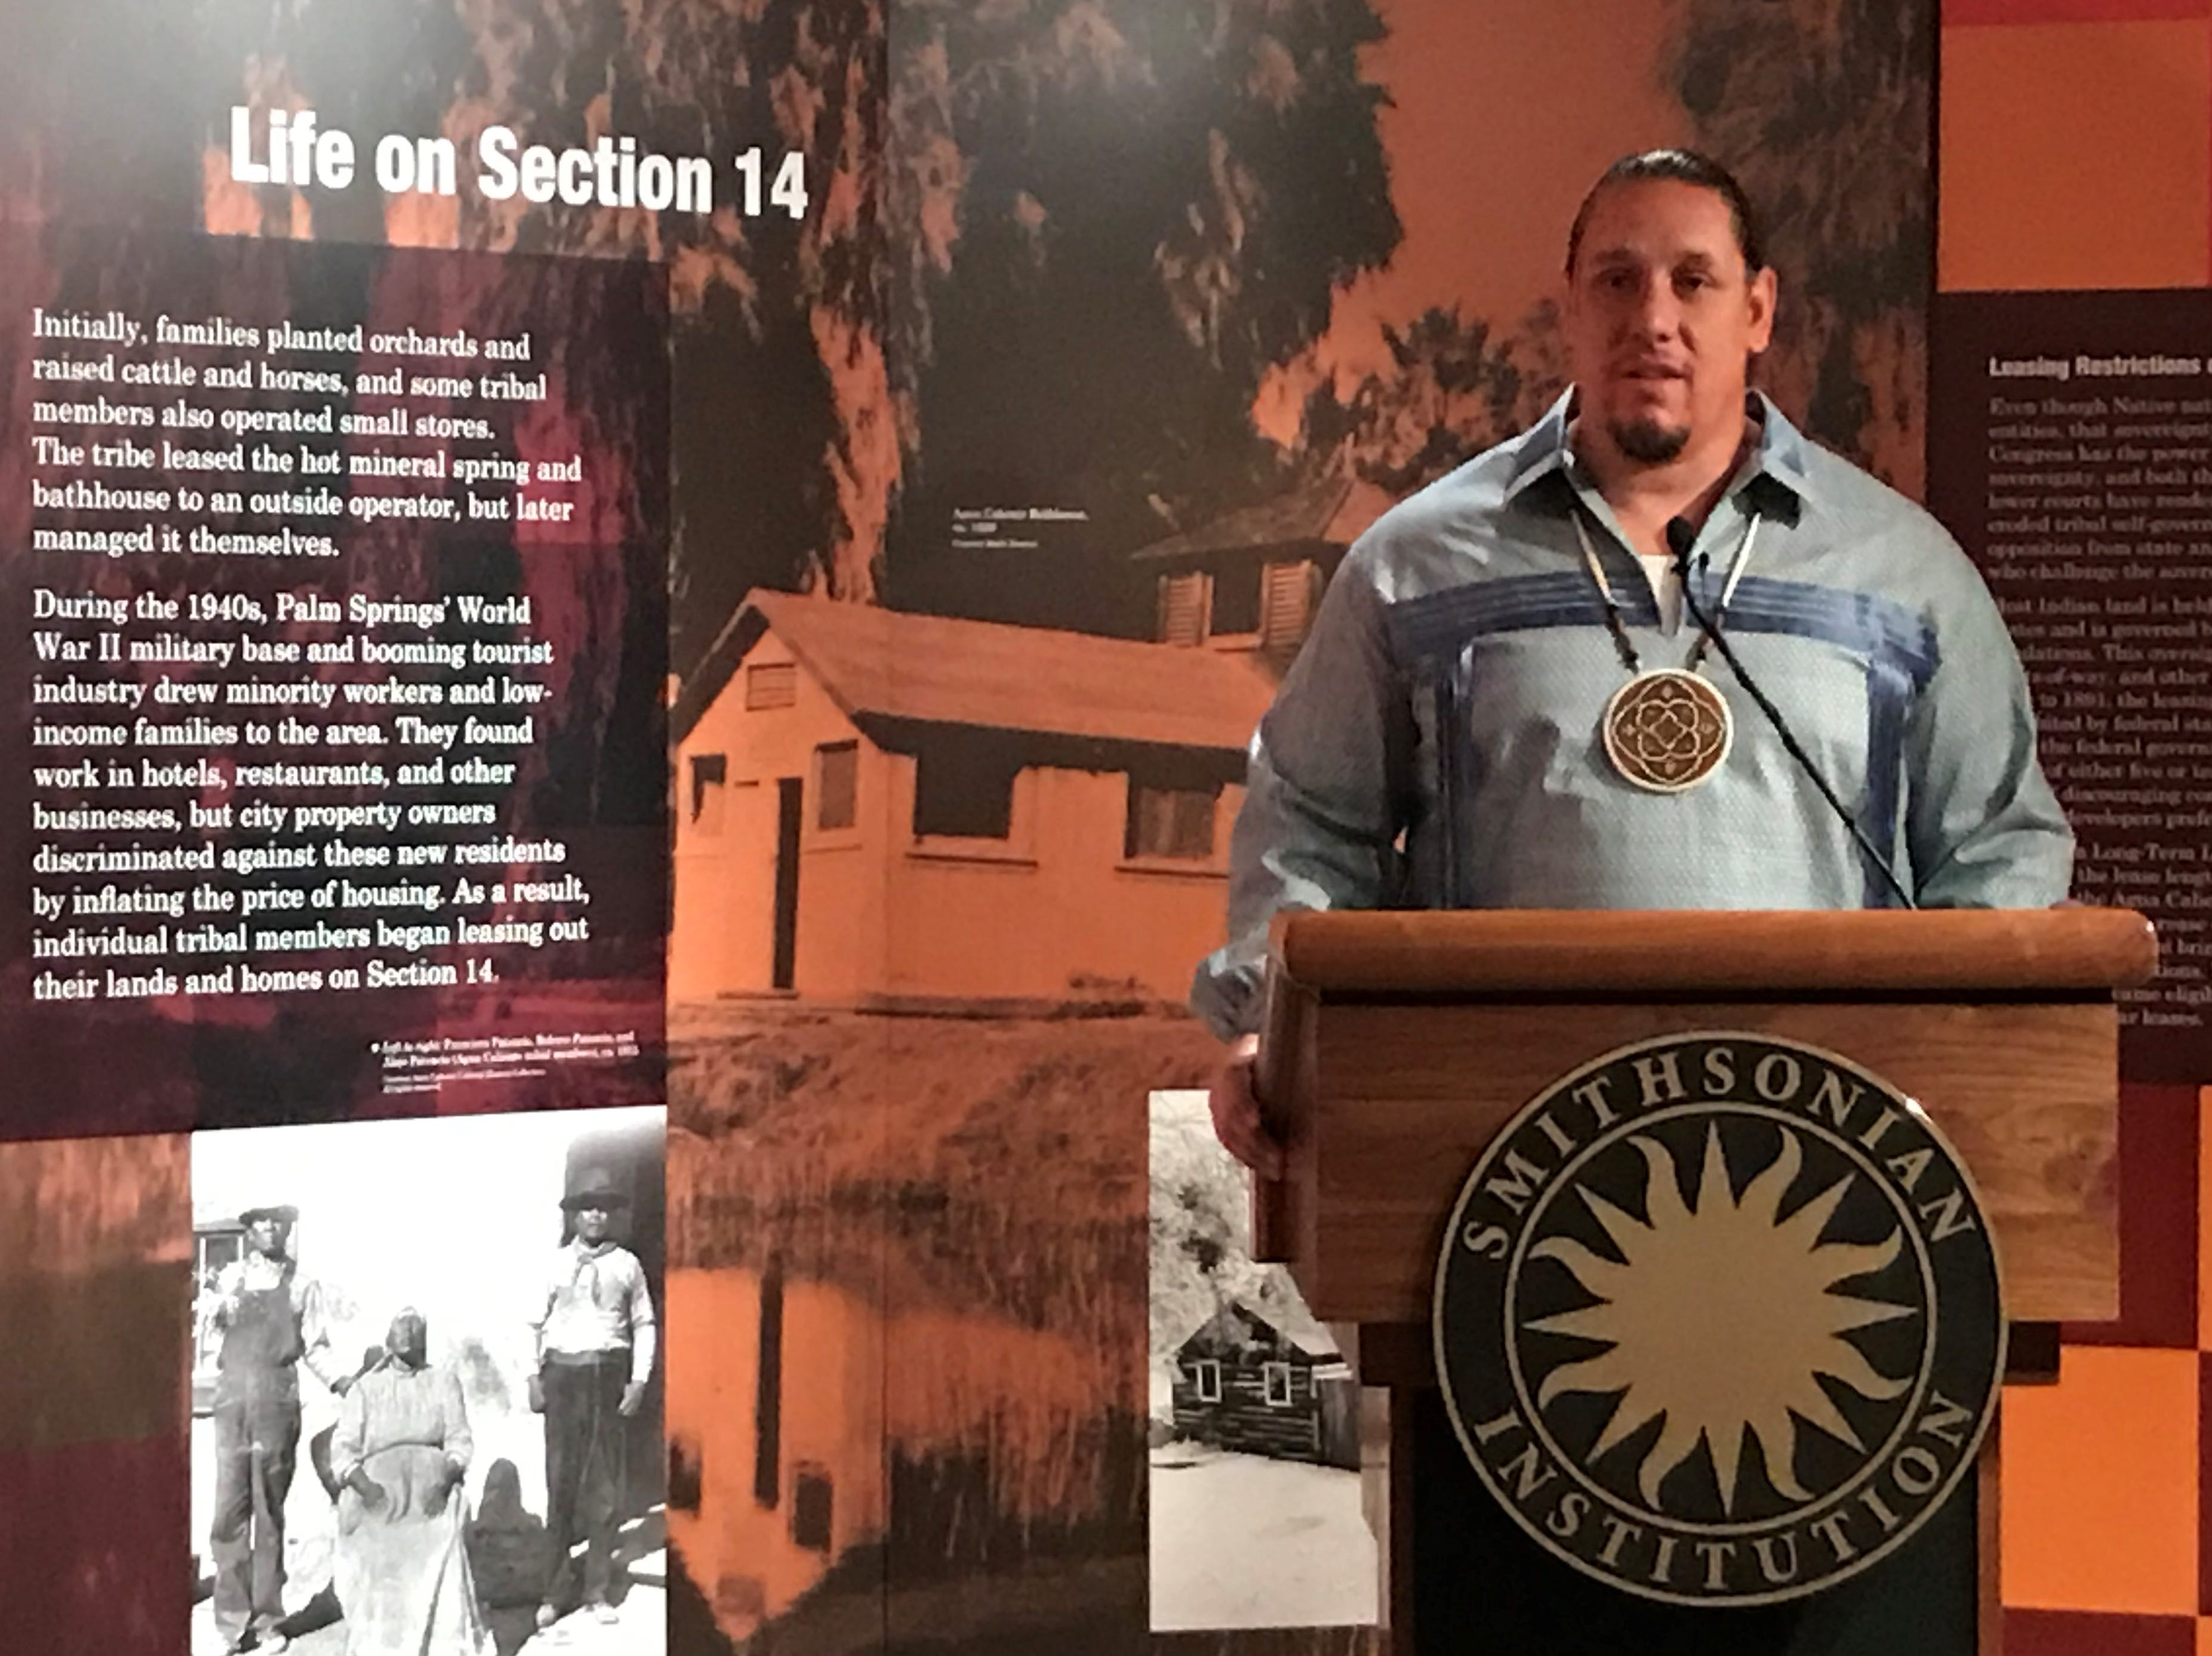 Tribal Chairman Jeff L. Grubbe of the Agua Caliente Band of Cahuilla Indians speaks at the grand opening of the tribe's Section 14 exhibit at the National Museum of the American Indian in Washington on Wednesday, April 10, 2019.